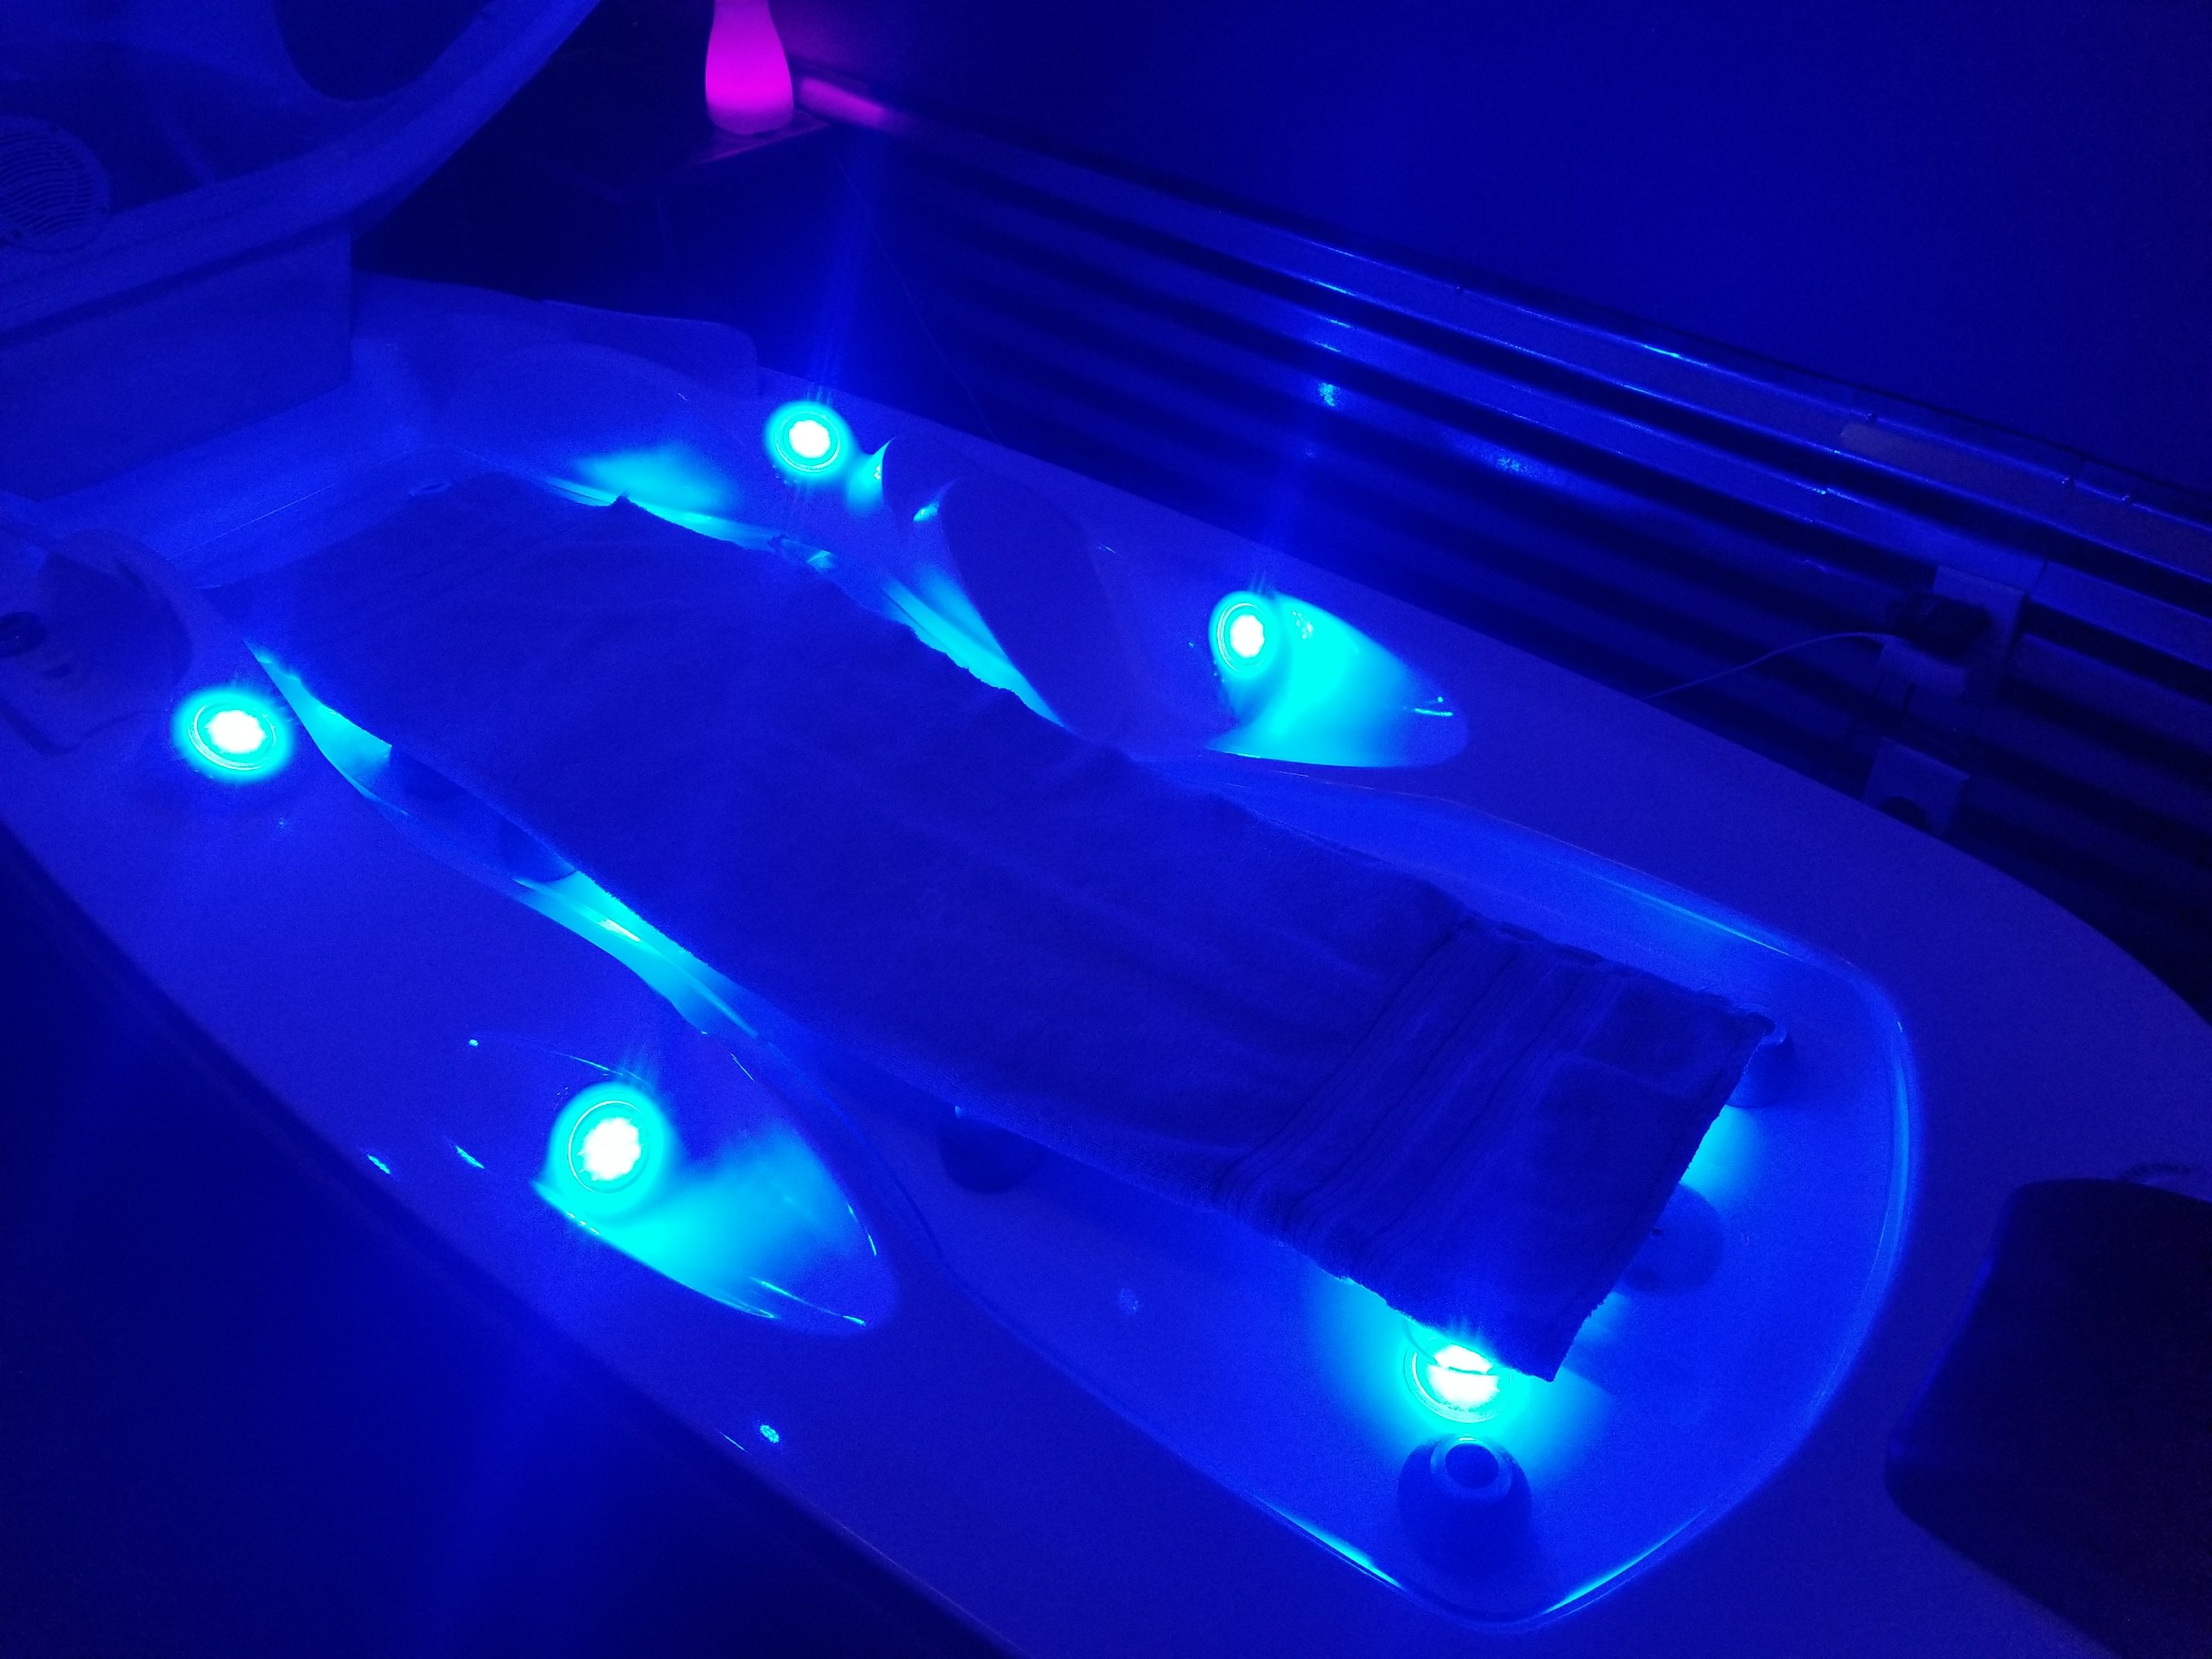 Hydro-Derma Fusion is a revolutionary system that provides a mix of innovative features to prolong service results and rejuvenate skin. It is a harmonization of radiant heat and steam with six LED light stations that enhance sessions with a rainbow of exciting color changes. The bed offers a soothing vibration massage while the cool facial air keeps you comfortable throughout your session. Add the aromatic scent of one of our oxygen concentrates, which are all specific blends of natural ingredients that delivers vitamins to to relax the mind and rejuvenate skin!